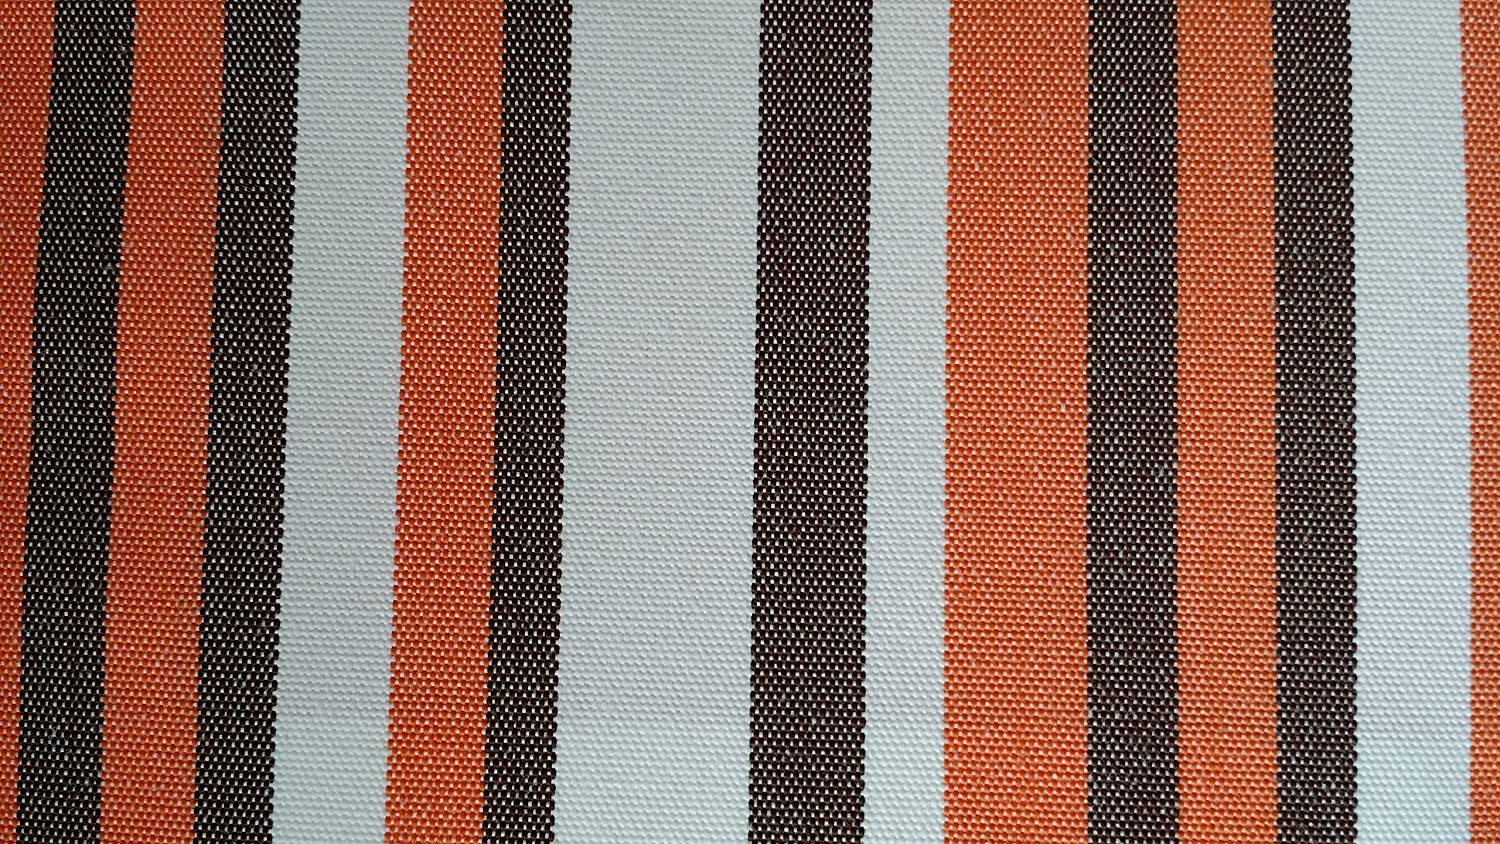 Outdoor Deko Kissen Fine Stripes Orange 40 x 40 cm (Stuhlkissen)